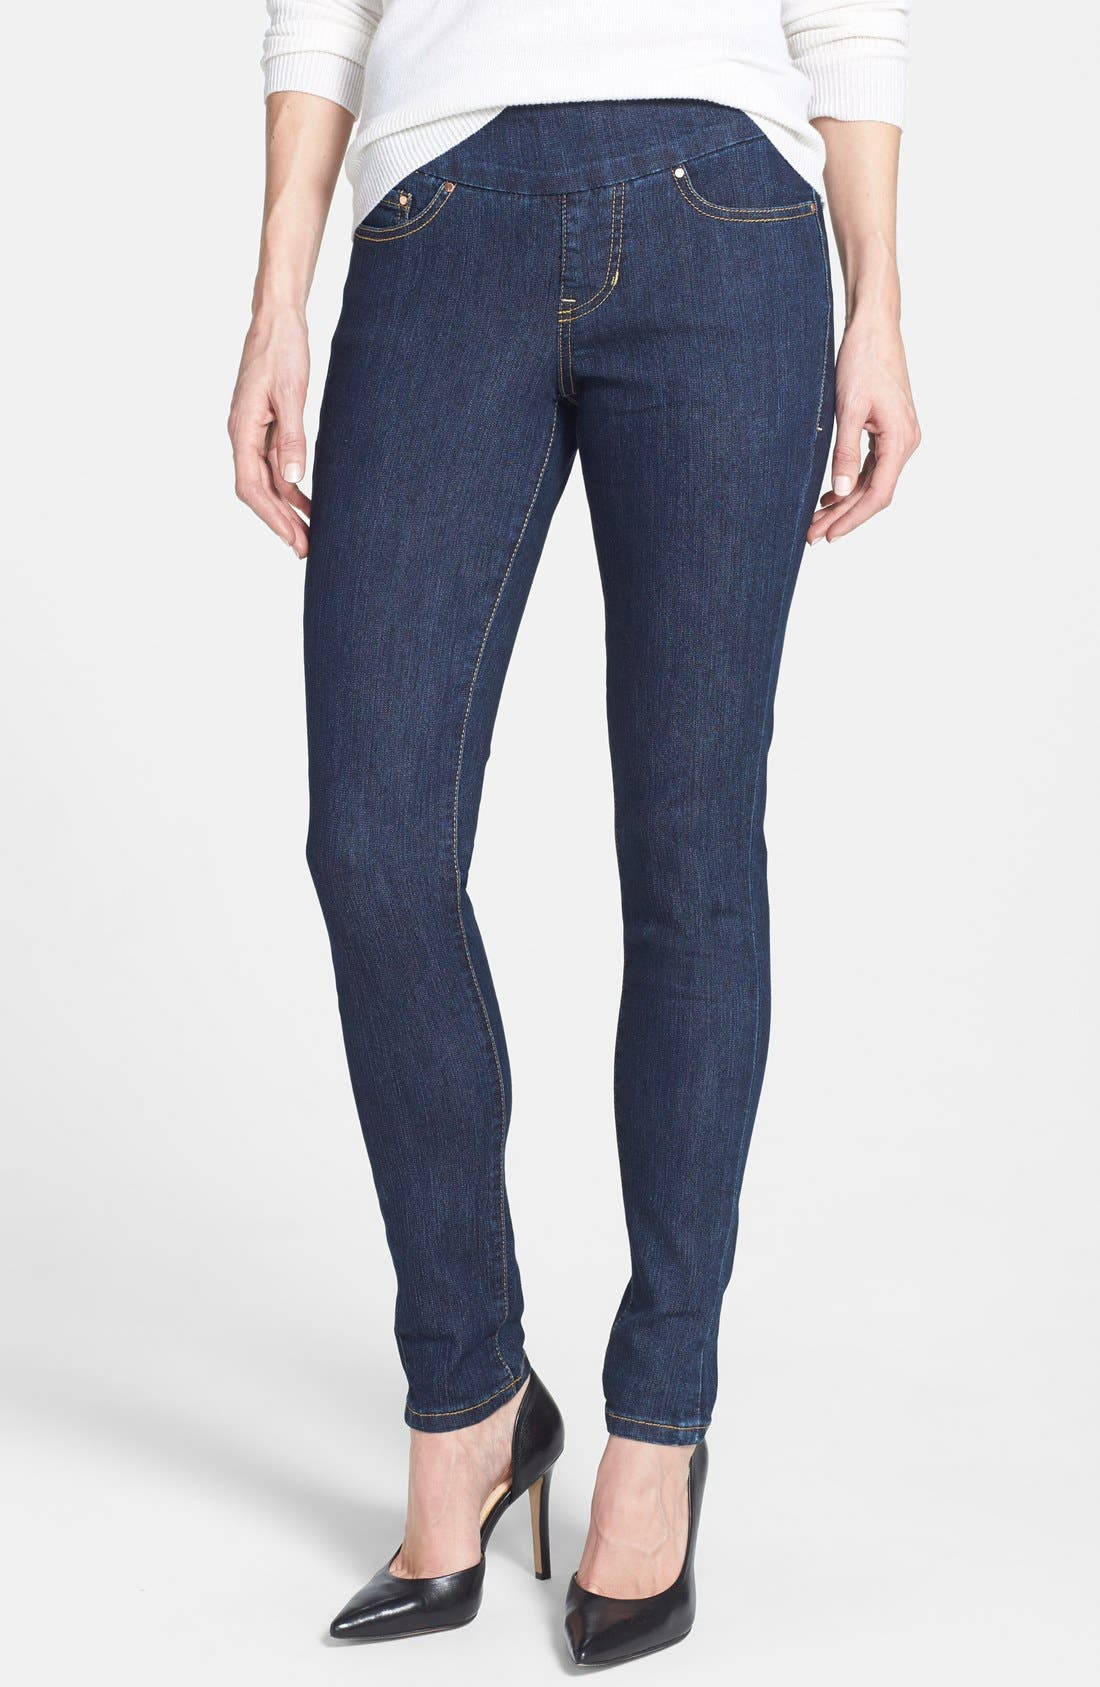 Alternate Image 1 Selected - Jag Jeans 'Nora' Pull On Stretch Skinny Jeans